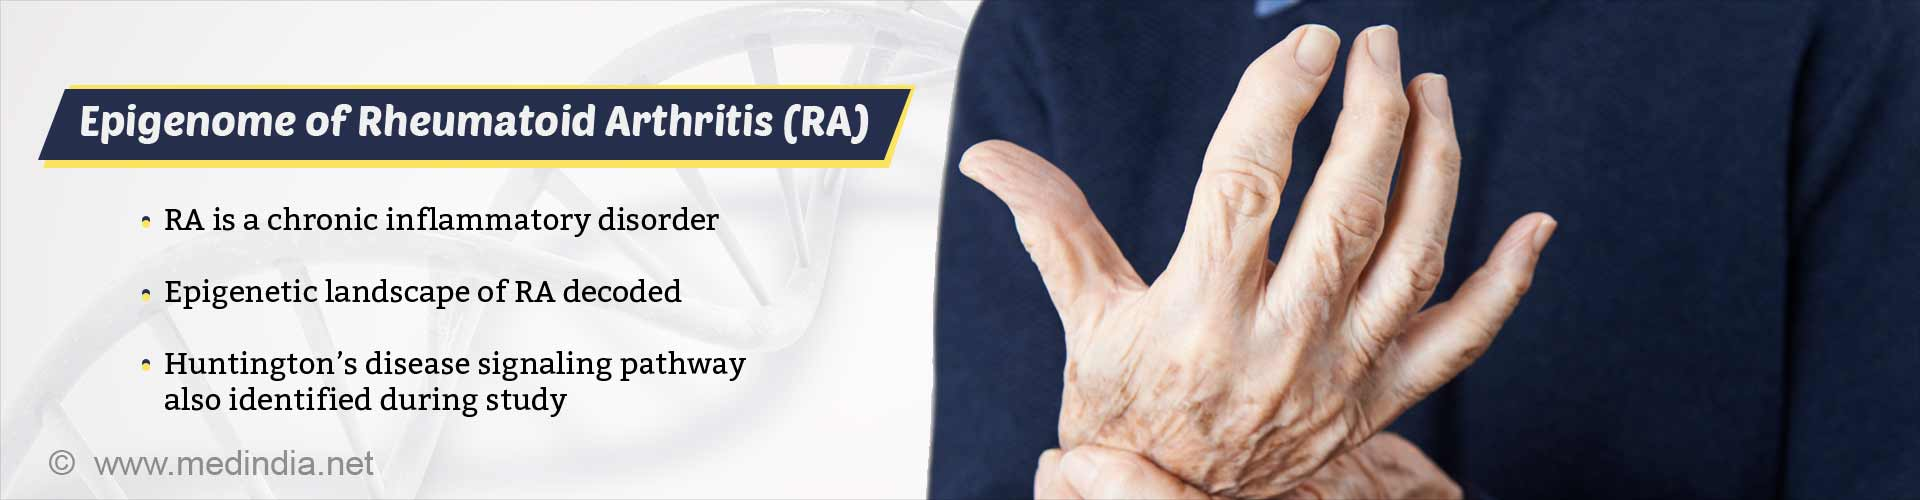 Rheumatoid Arthritis Connection With Huntington's Disease Discovered